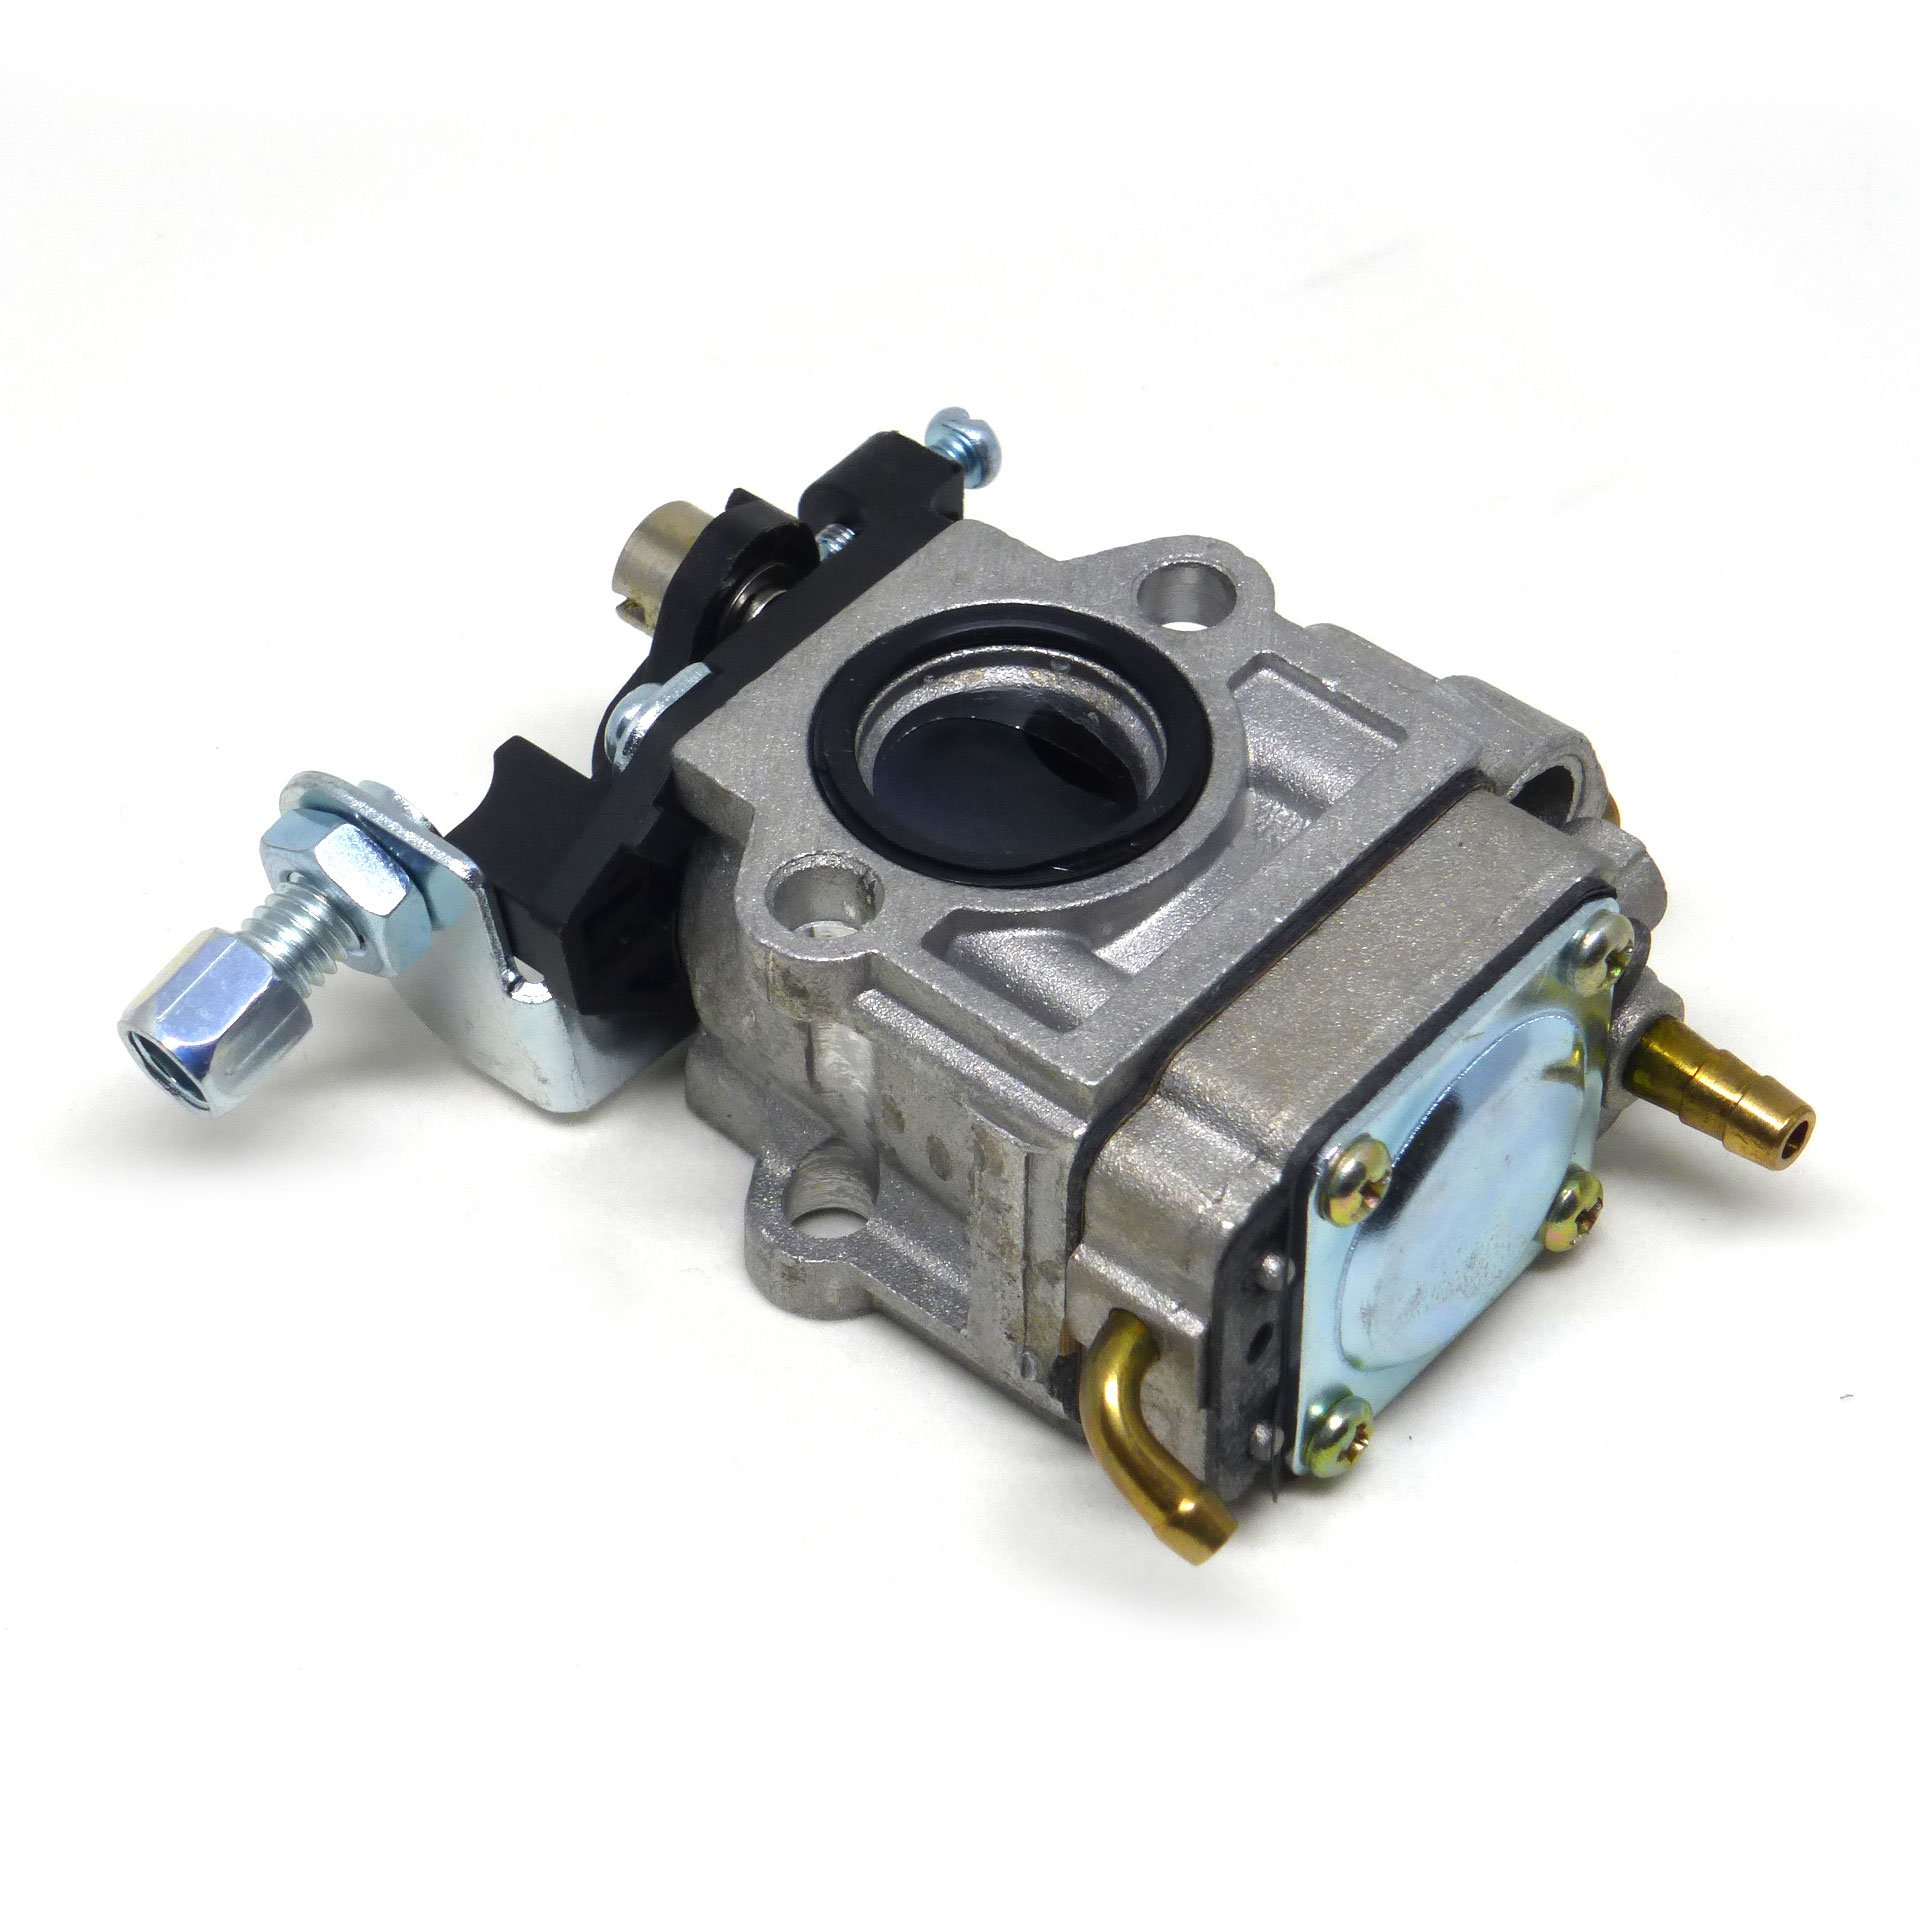 Carburetor Replacement for Echo PB770 Backpack Blower, A021001870